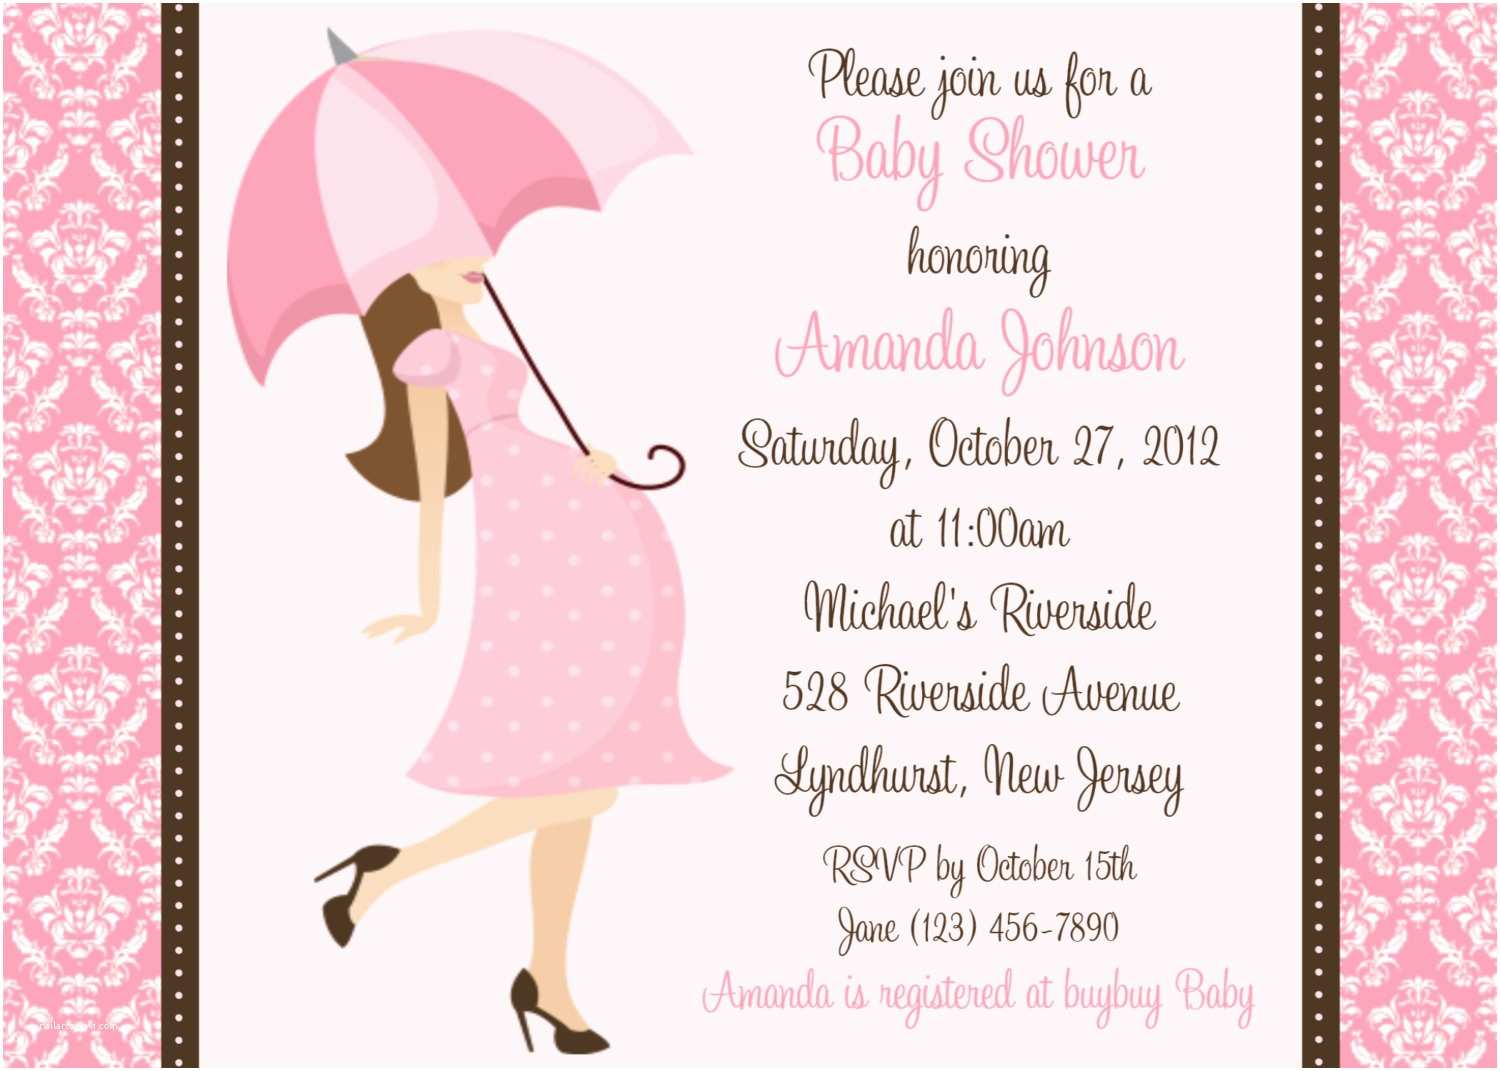 Baby Shower Invitation Cards Baby Shower Invitations for Boy & Girls Baby Shower